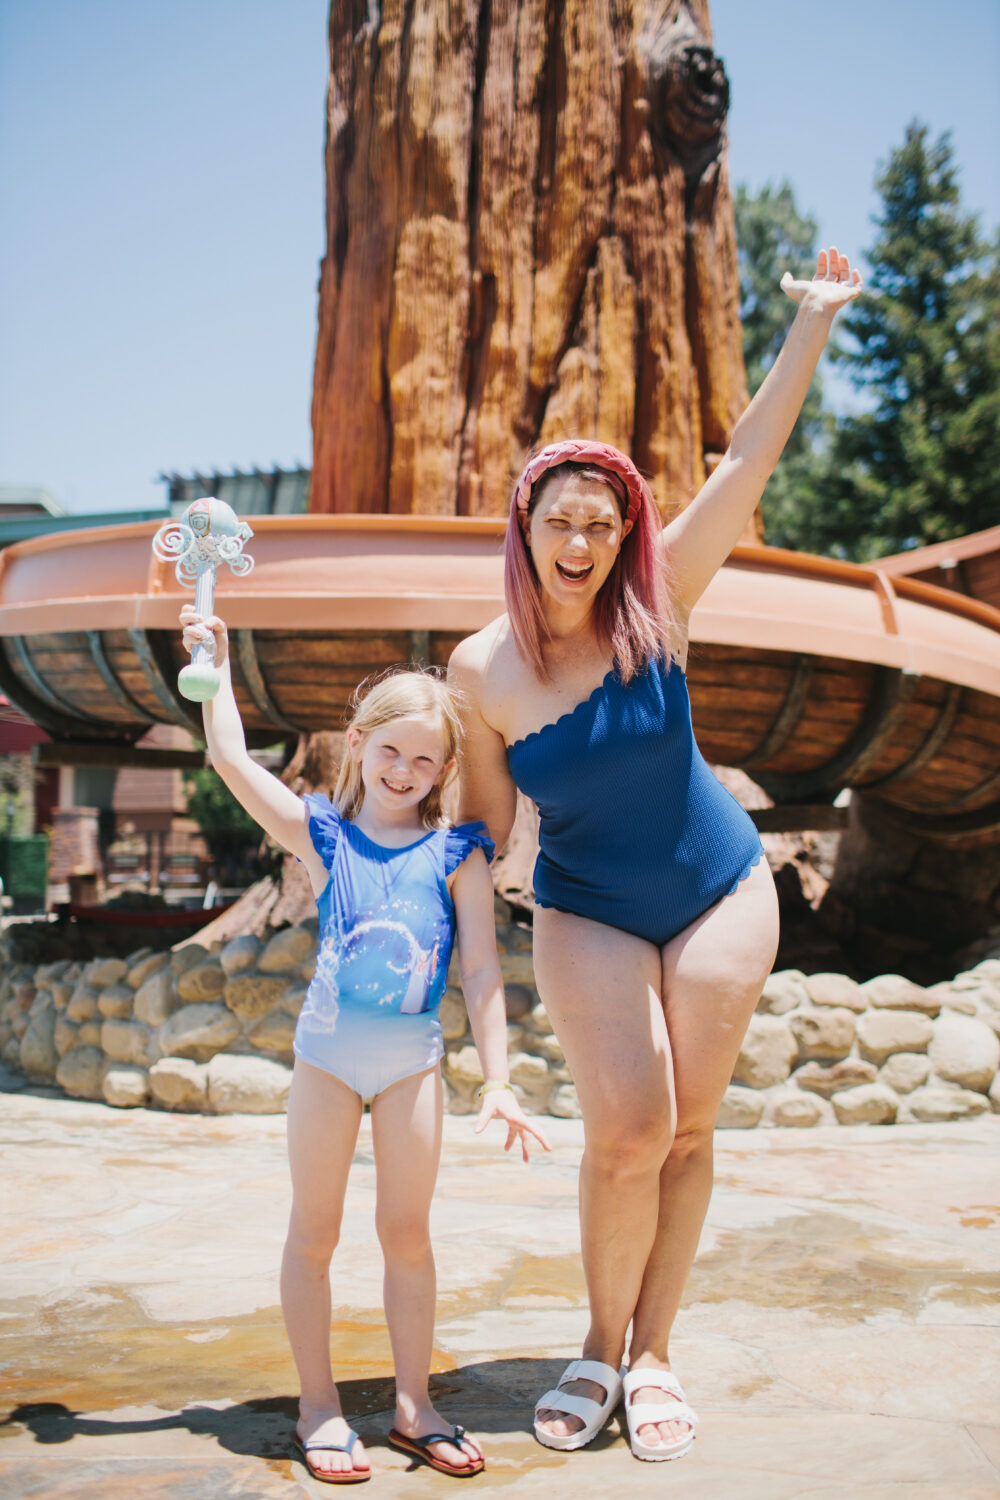 Planning a trip to Disney during the warmer months? Then these Disney Bathing Suits are some great options for pool or beach days filled with pixie dust!